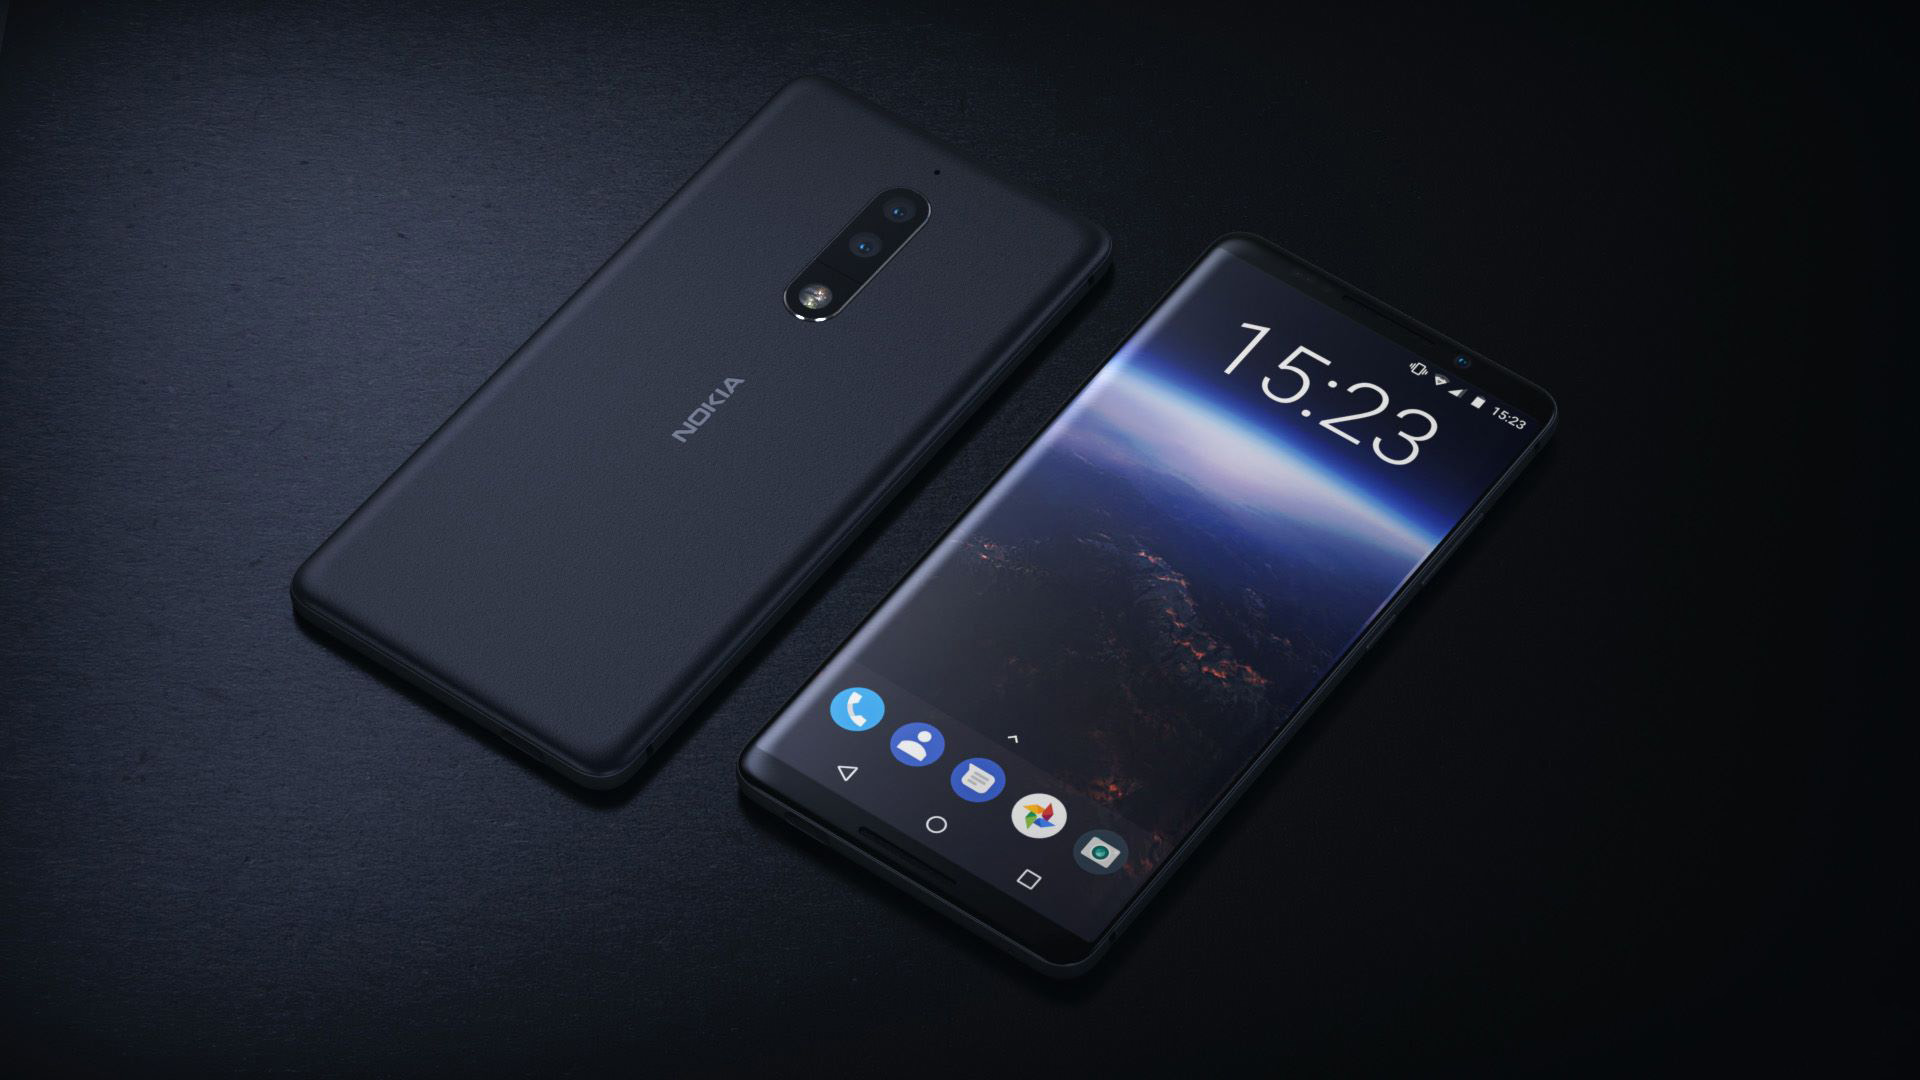 Upcoming Nokia 7.1 Plus leaks out again in new 360-degree renders